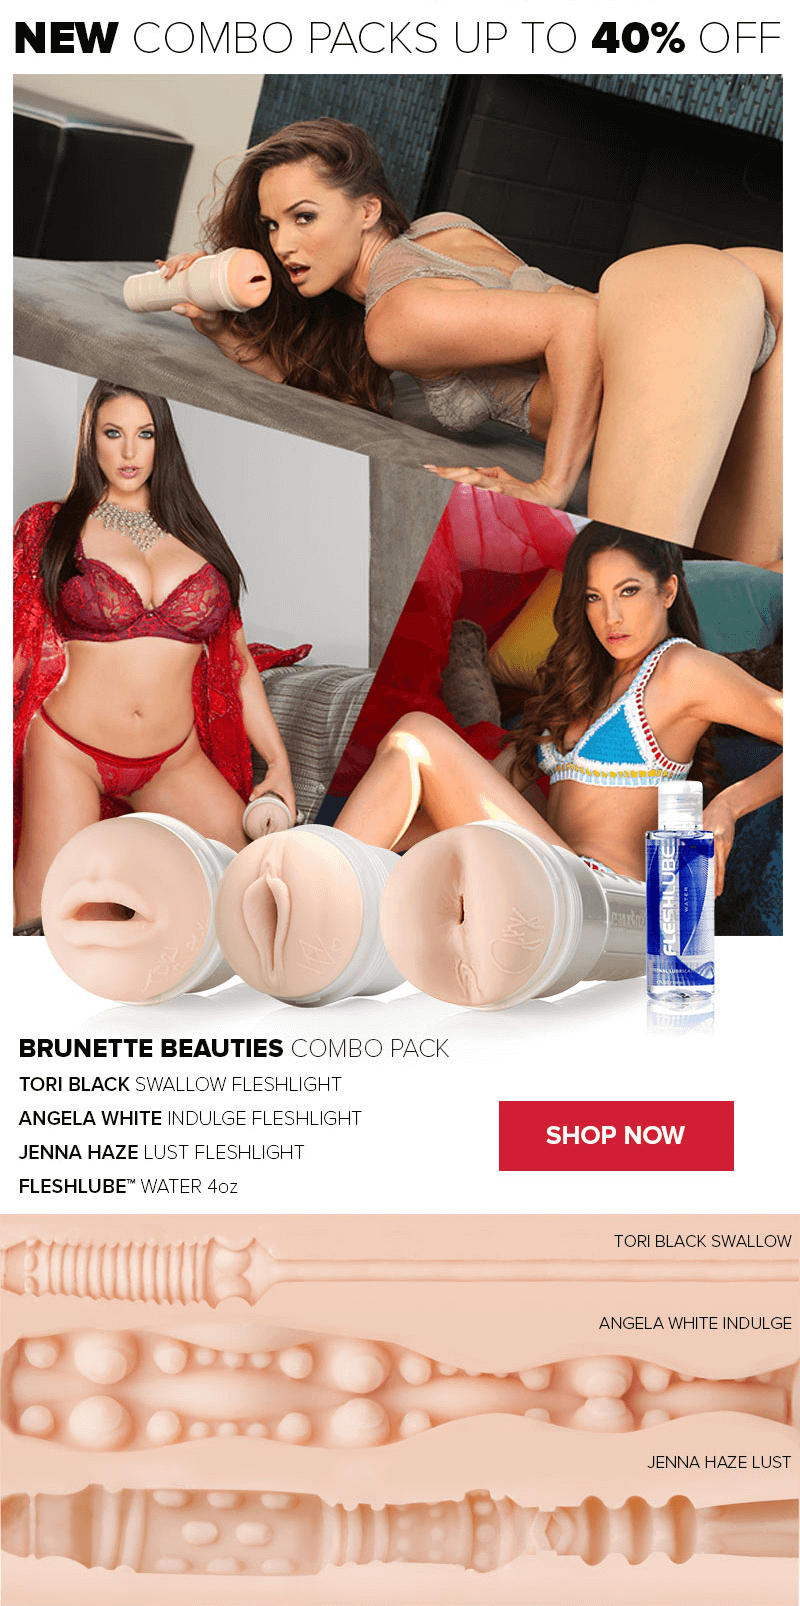 Fleshlight Brunnete Beauties Combo Pack